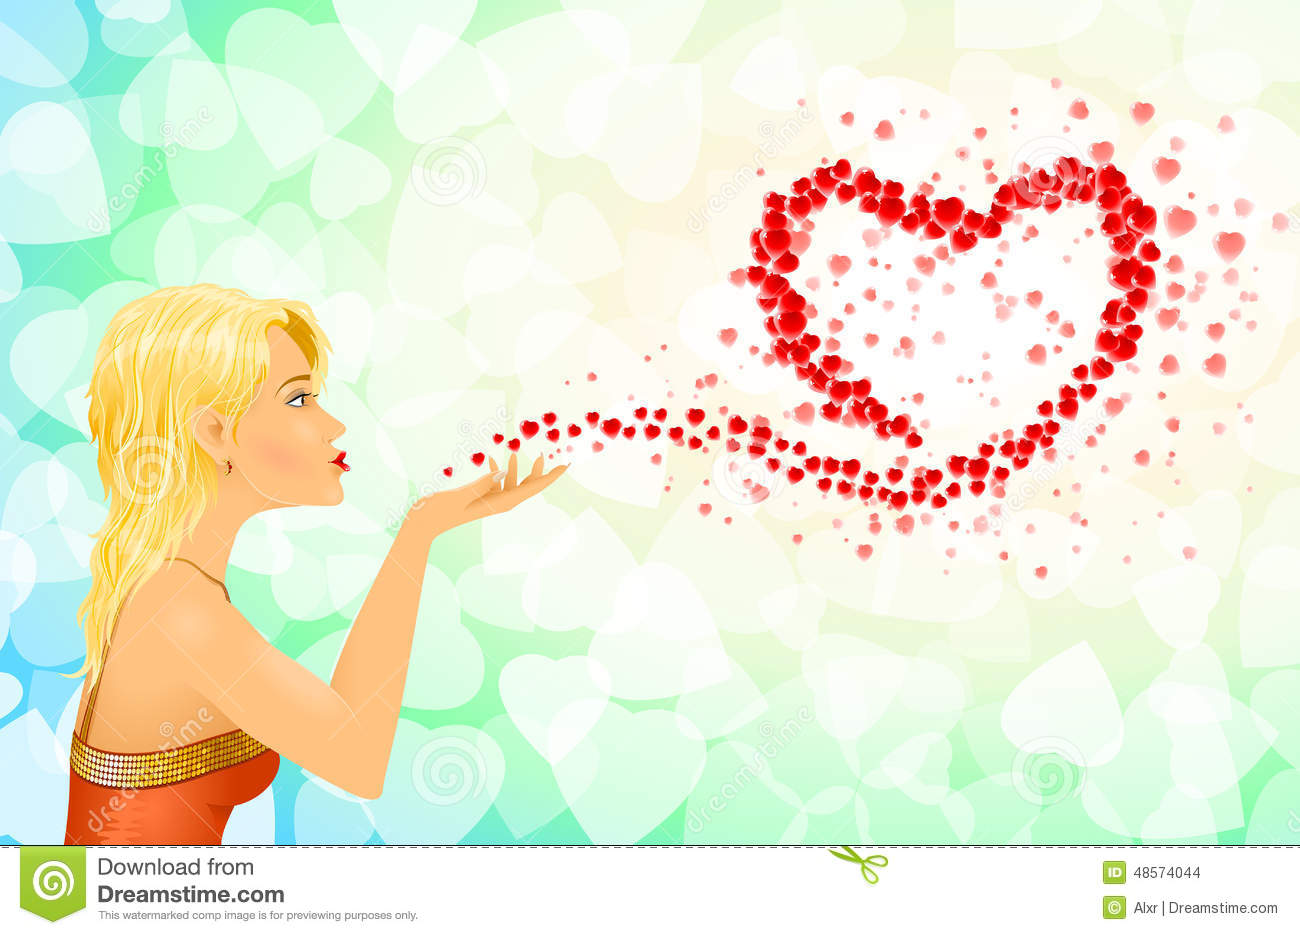 Clipart girl blowing hearts valentine vector free library Girl Heart Sign Love Messages Stock Vector - Image: 48574044 vector free library